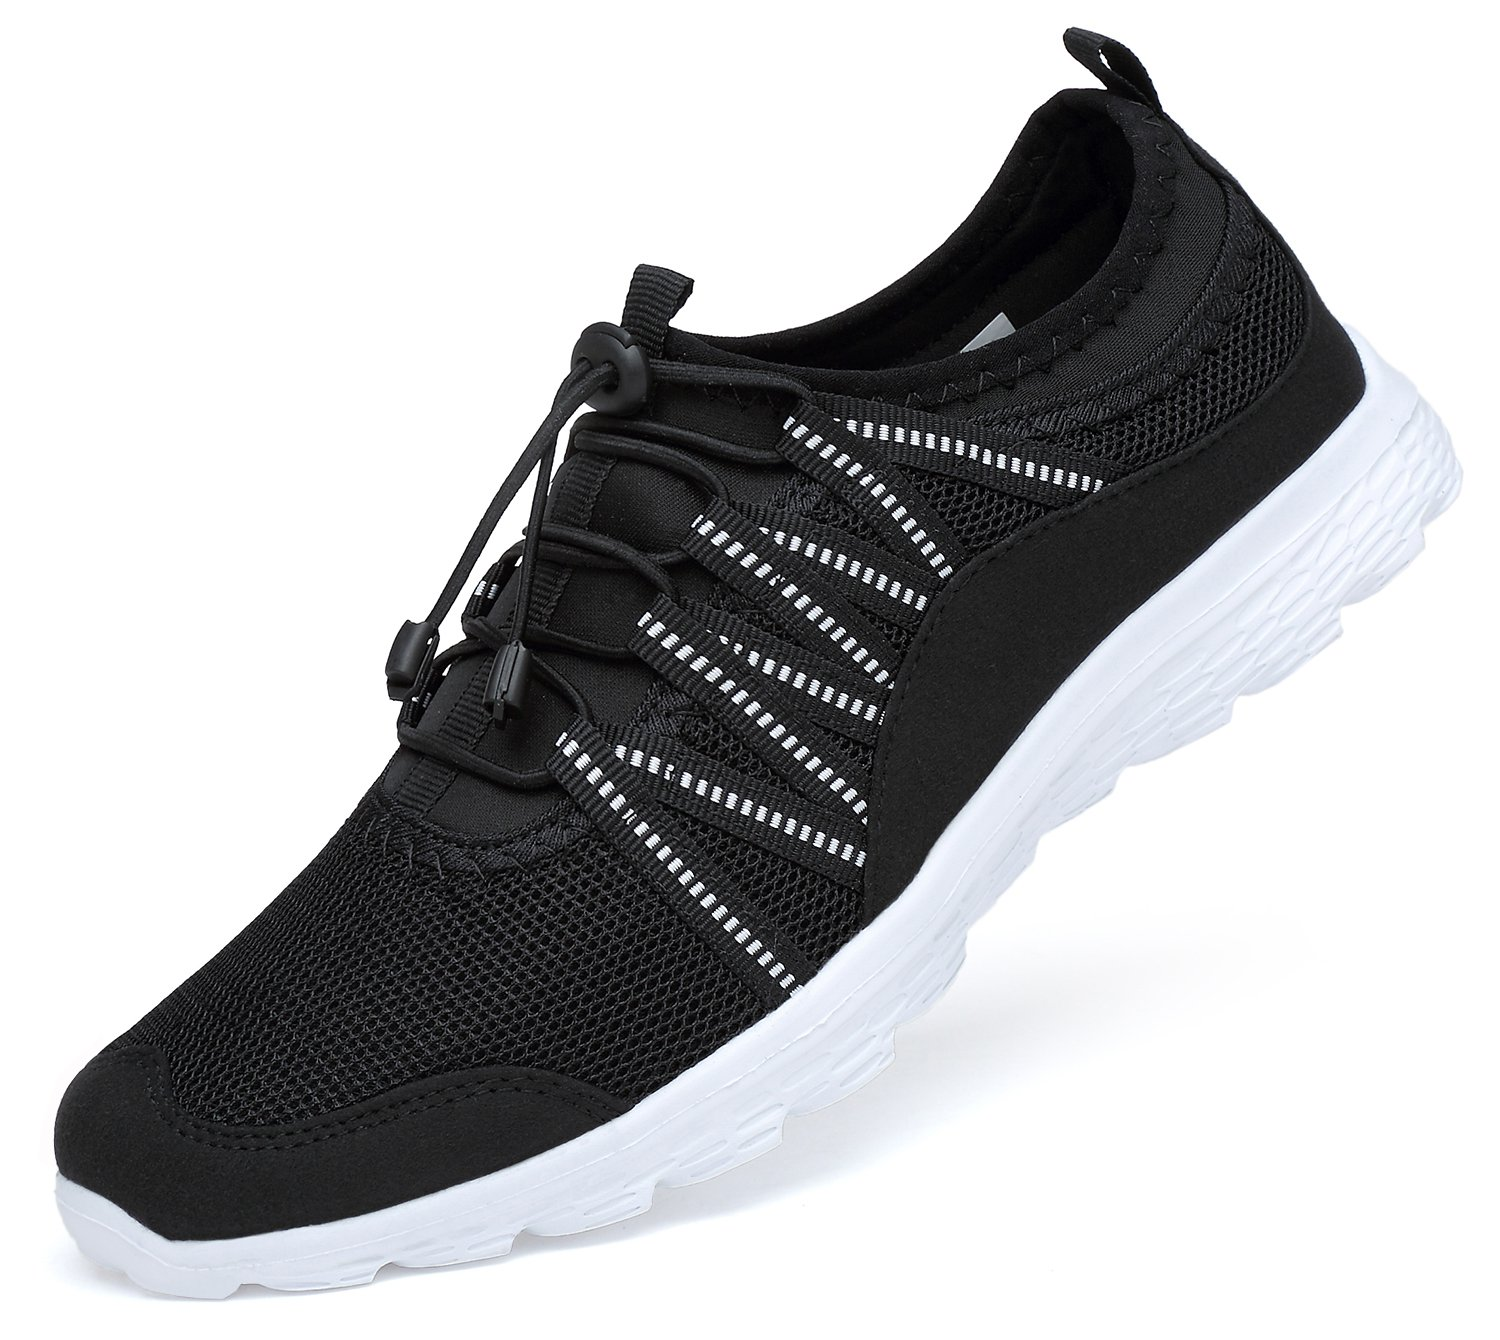 Men's Lightweight Walking Shoes Breathable Mesh Soft Sole for Casual Walk Outdoor Workout Travel Work by Belilent (Image #1)